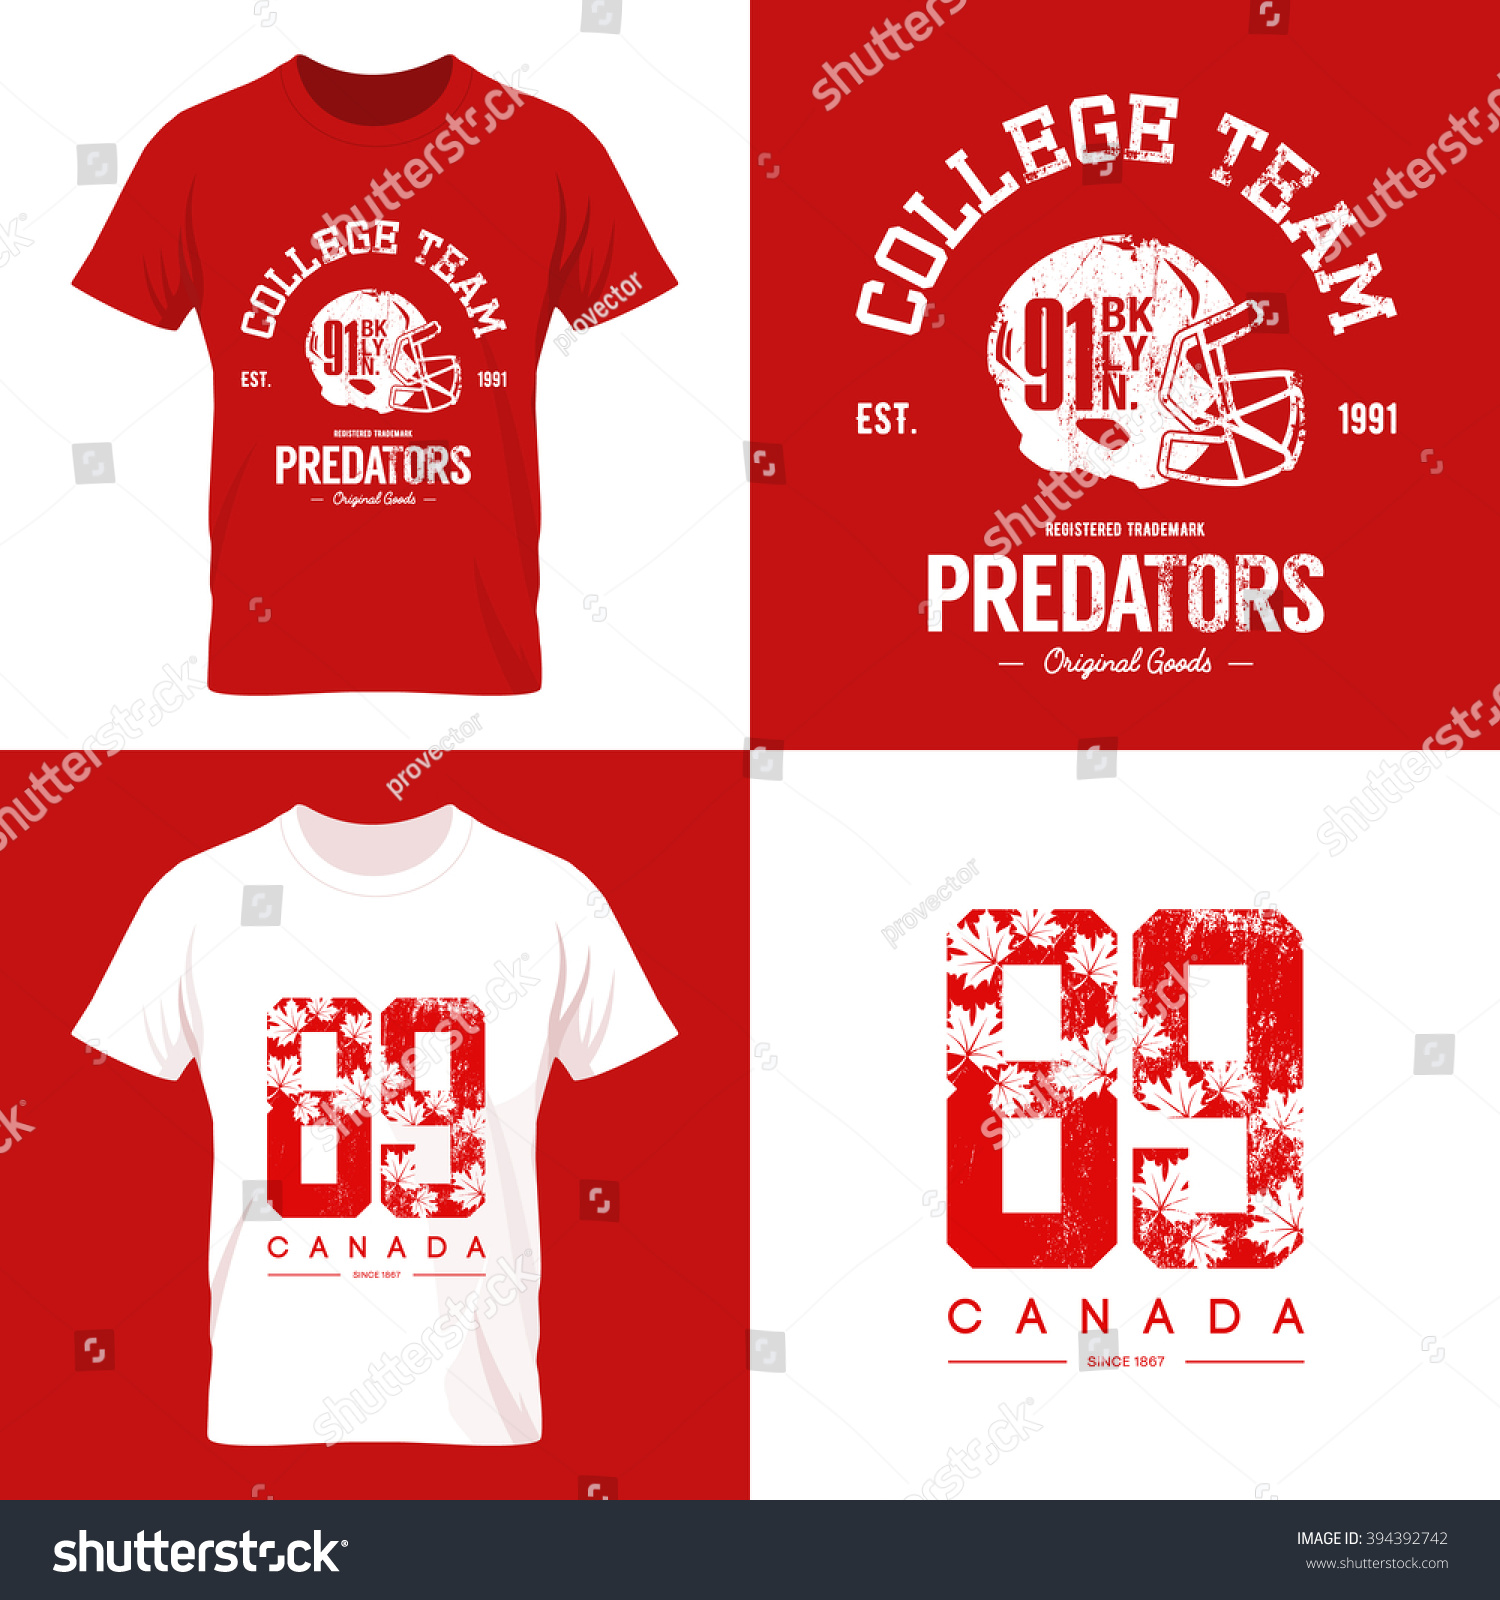 Shirt design canada - Vintage Canada Red Tee Print Vector Design American Football Collage Team Old Grunge Effect